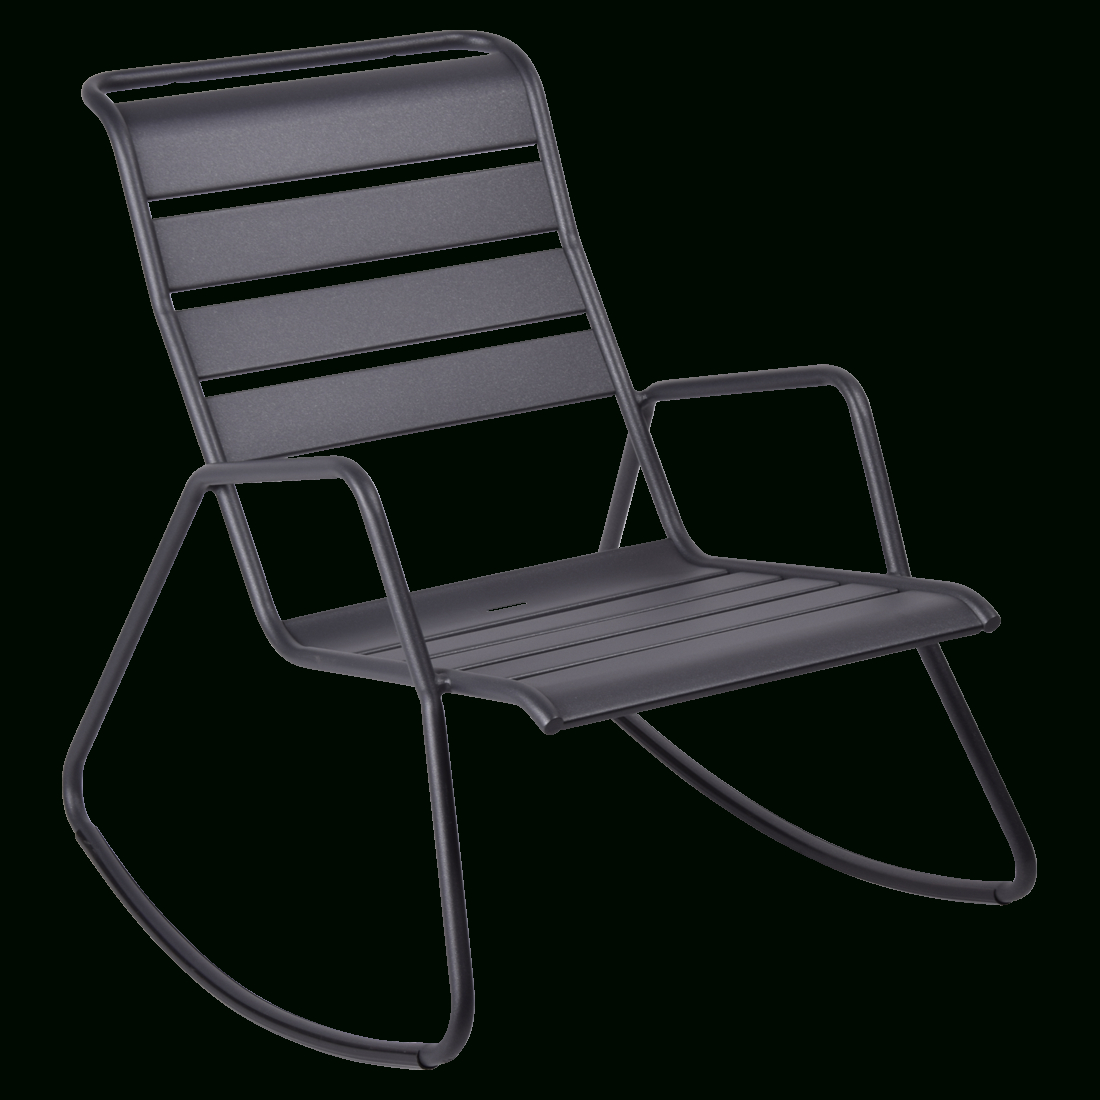 Monceau Rocking Chair, For Outdoor Living Space tout Rocking Chair Jardin